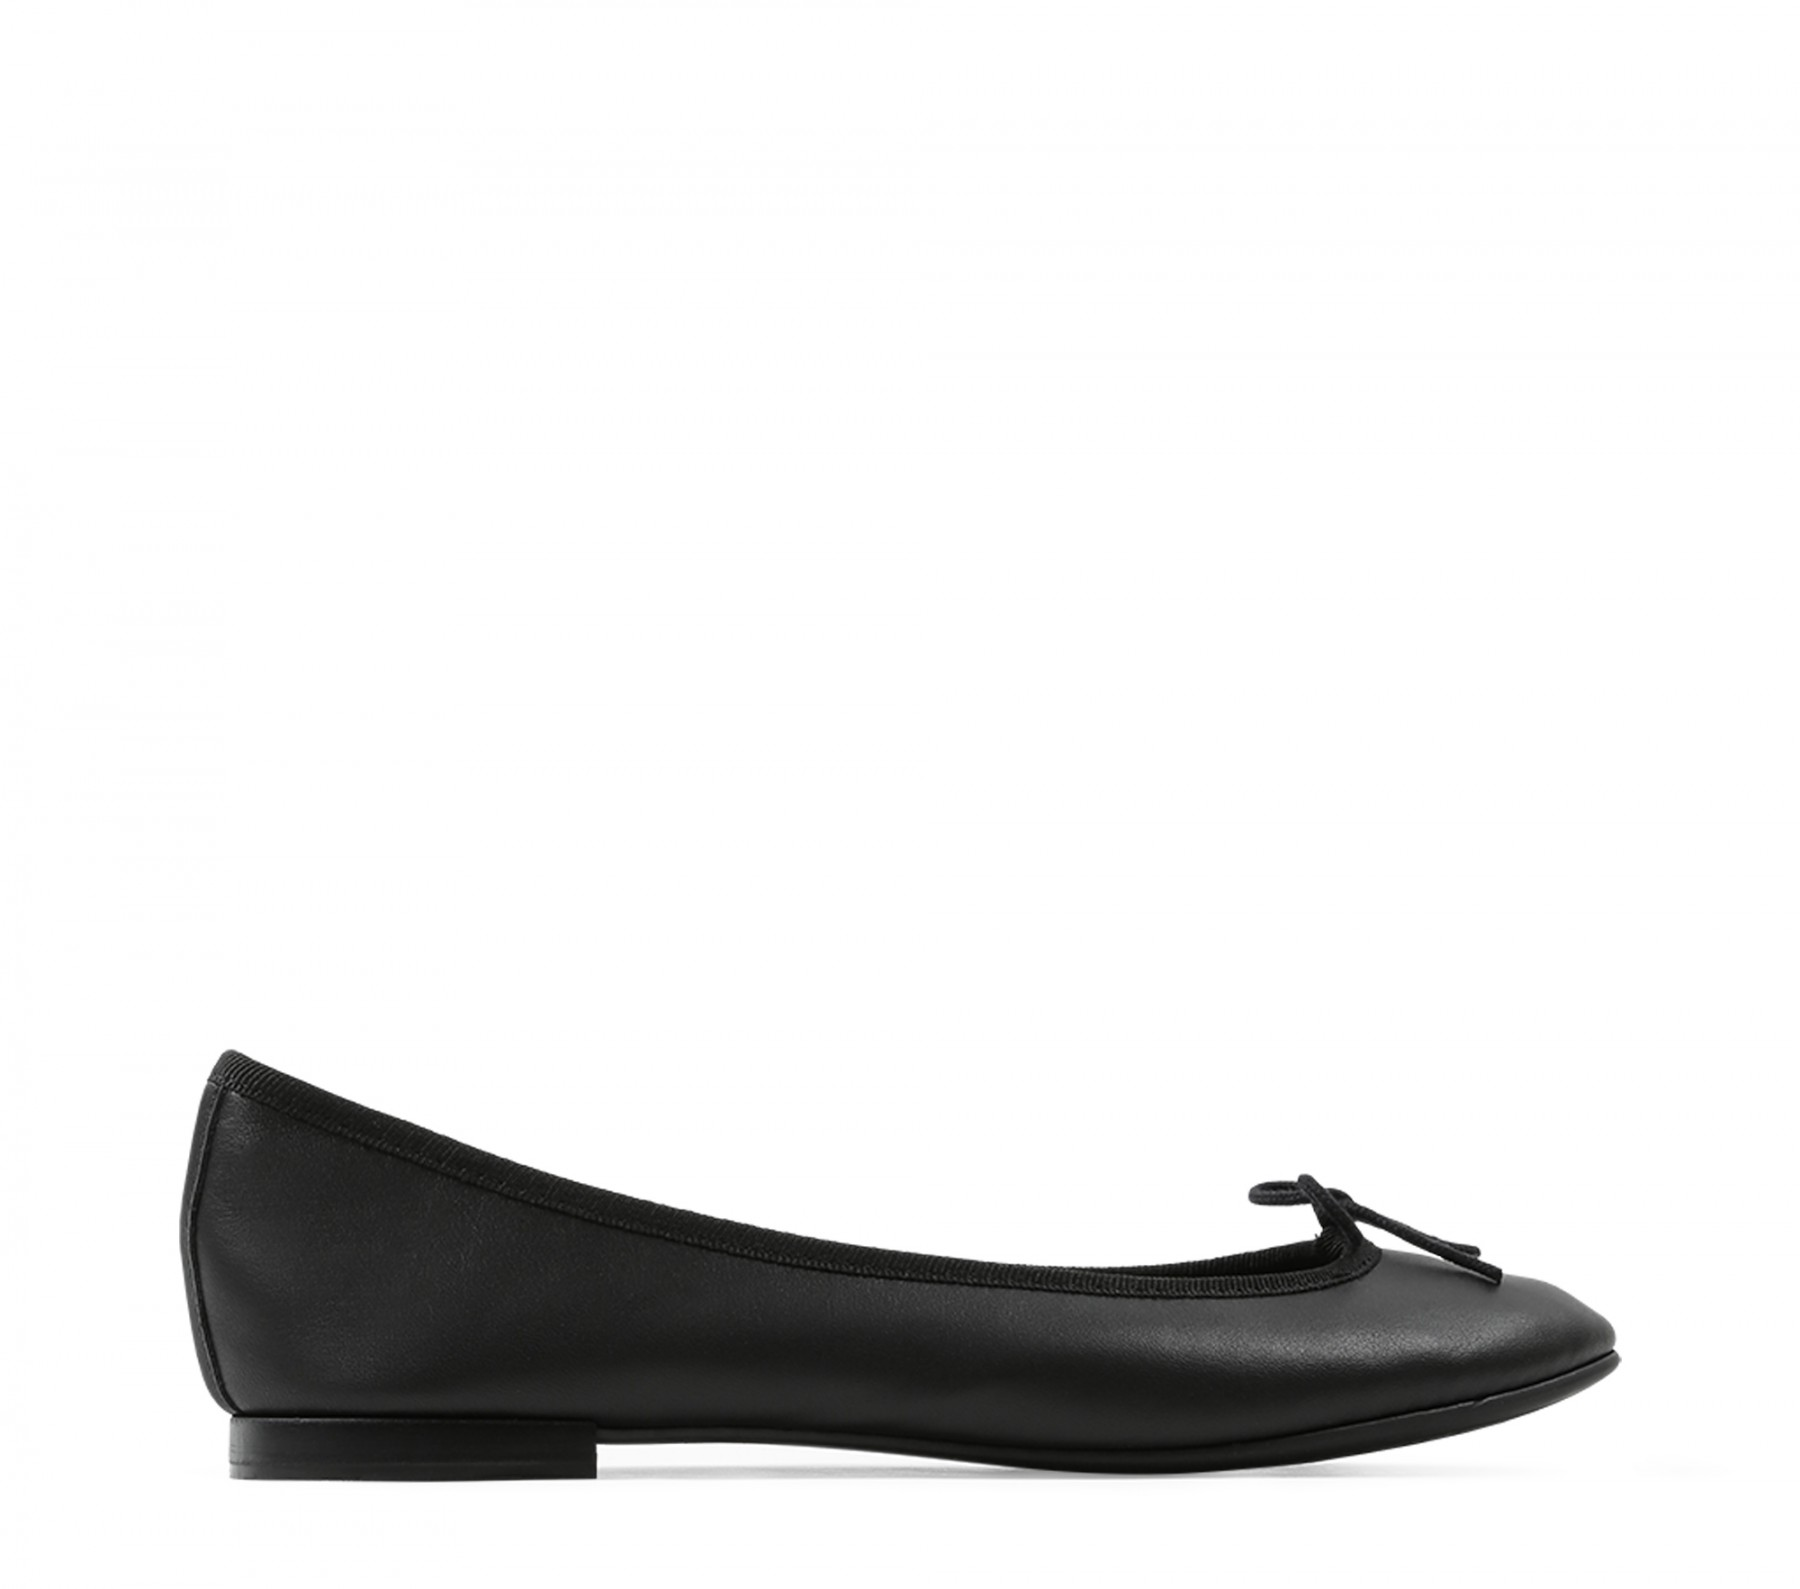 Repetto Ballerines Lili Noir